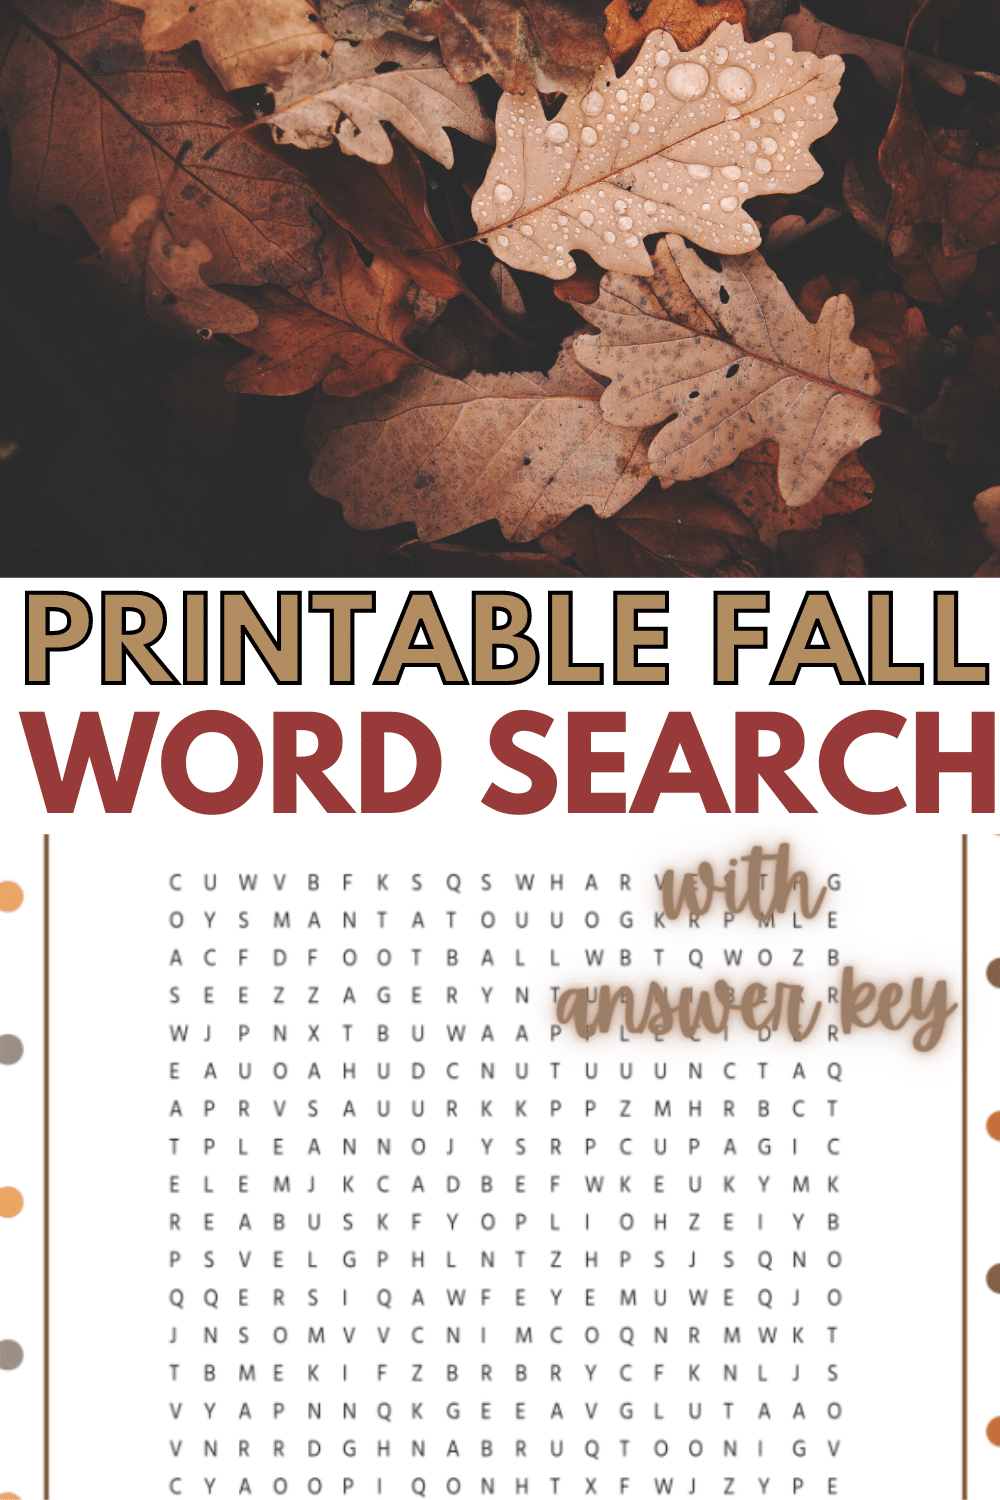 This free printable fall word search is a great autumn themed activity for elementary school aged kids! #wordsearch #printable #forkids #wondermomwannabe via @wondermomwannab